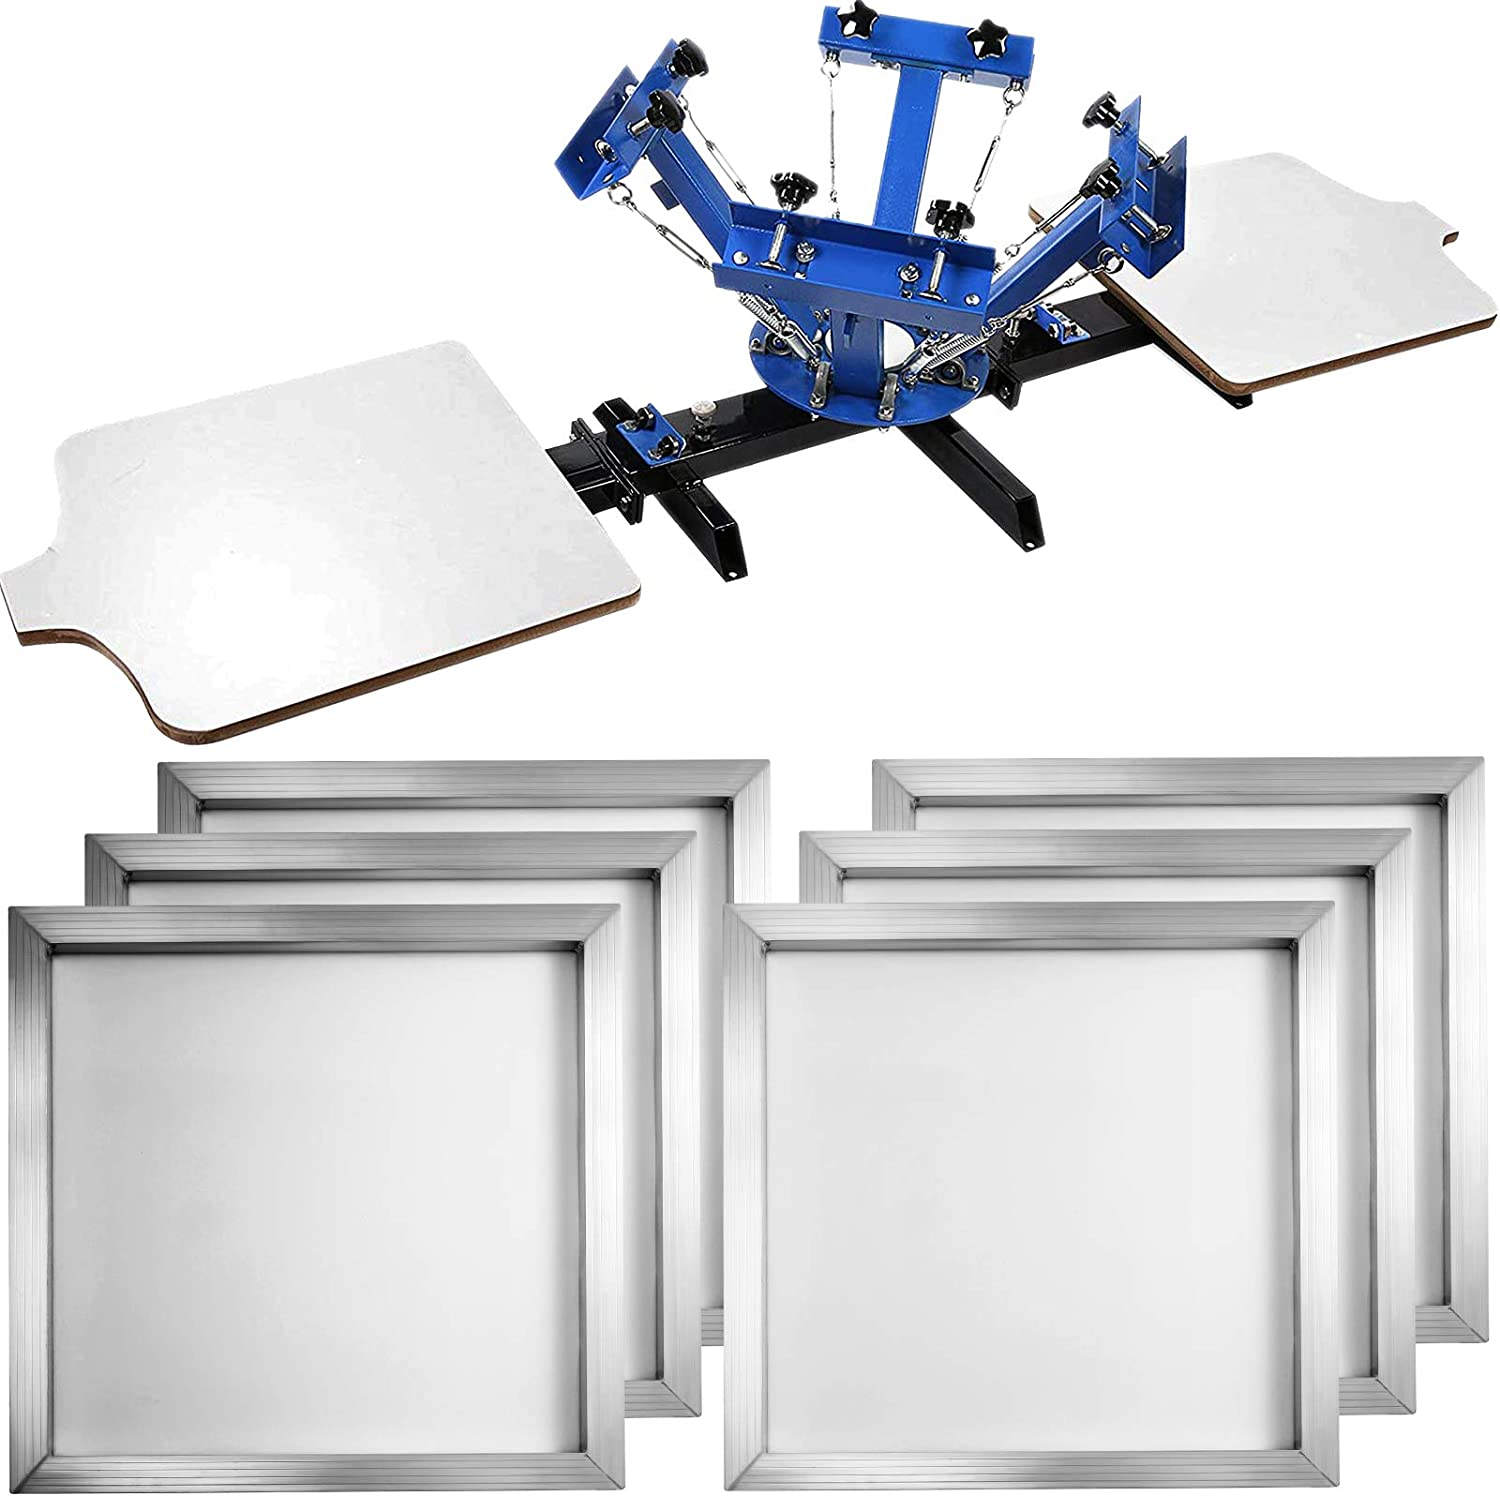 VEVOR 4 Be super welcome Color 2 Station Screen-Print Popular products + 6 Press 18 Machine Pieces